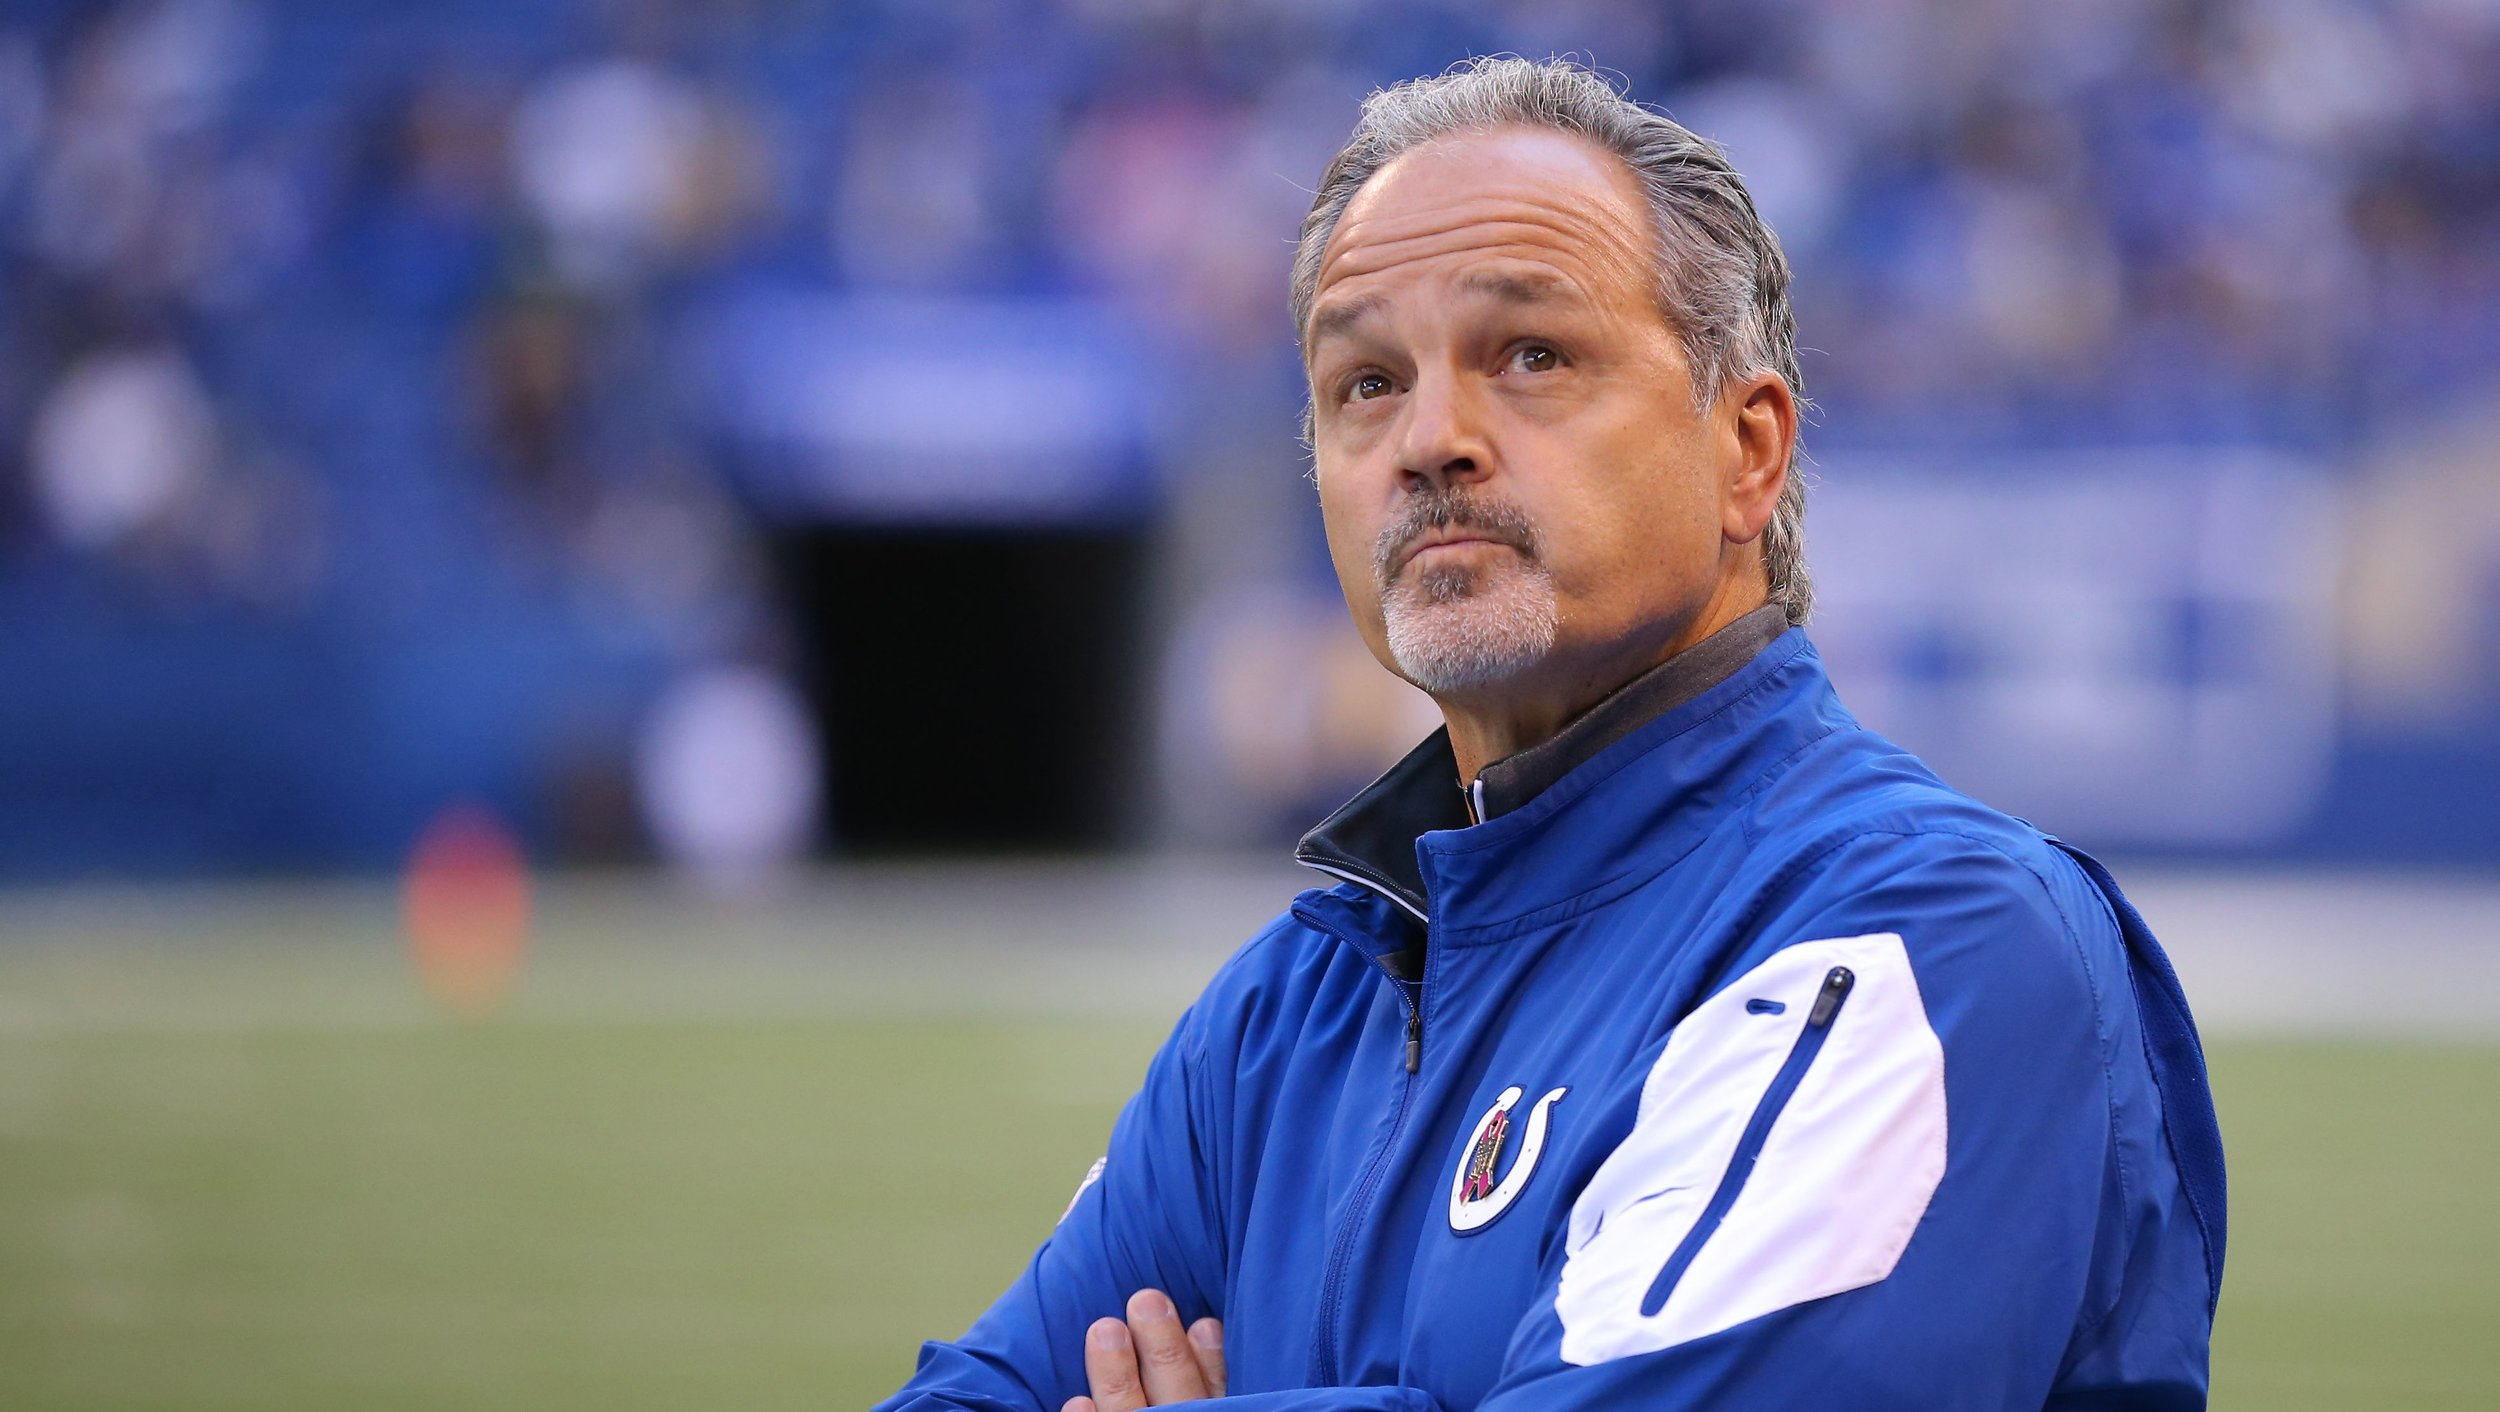 Chuck Pagano  coached the Indianapolis Colts to three playoff appearances, including one AFC Championship Game in 2014.